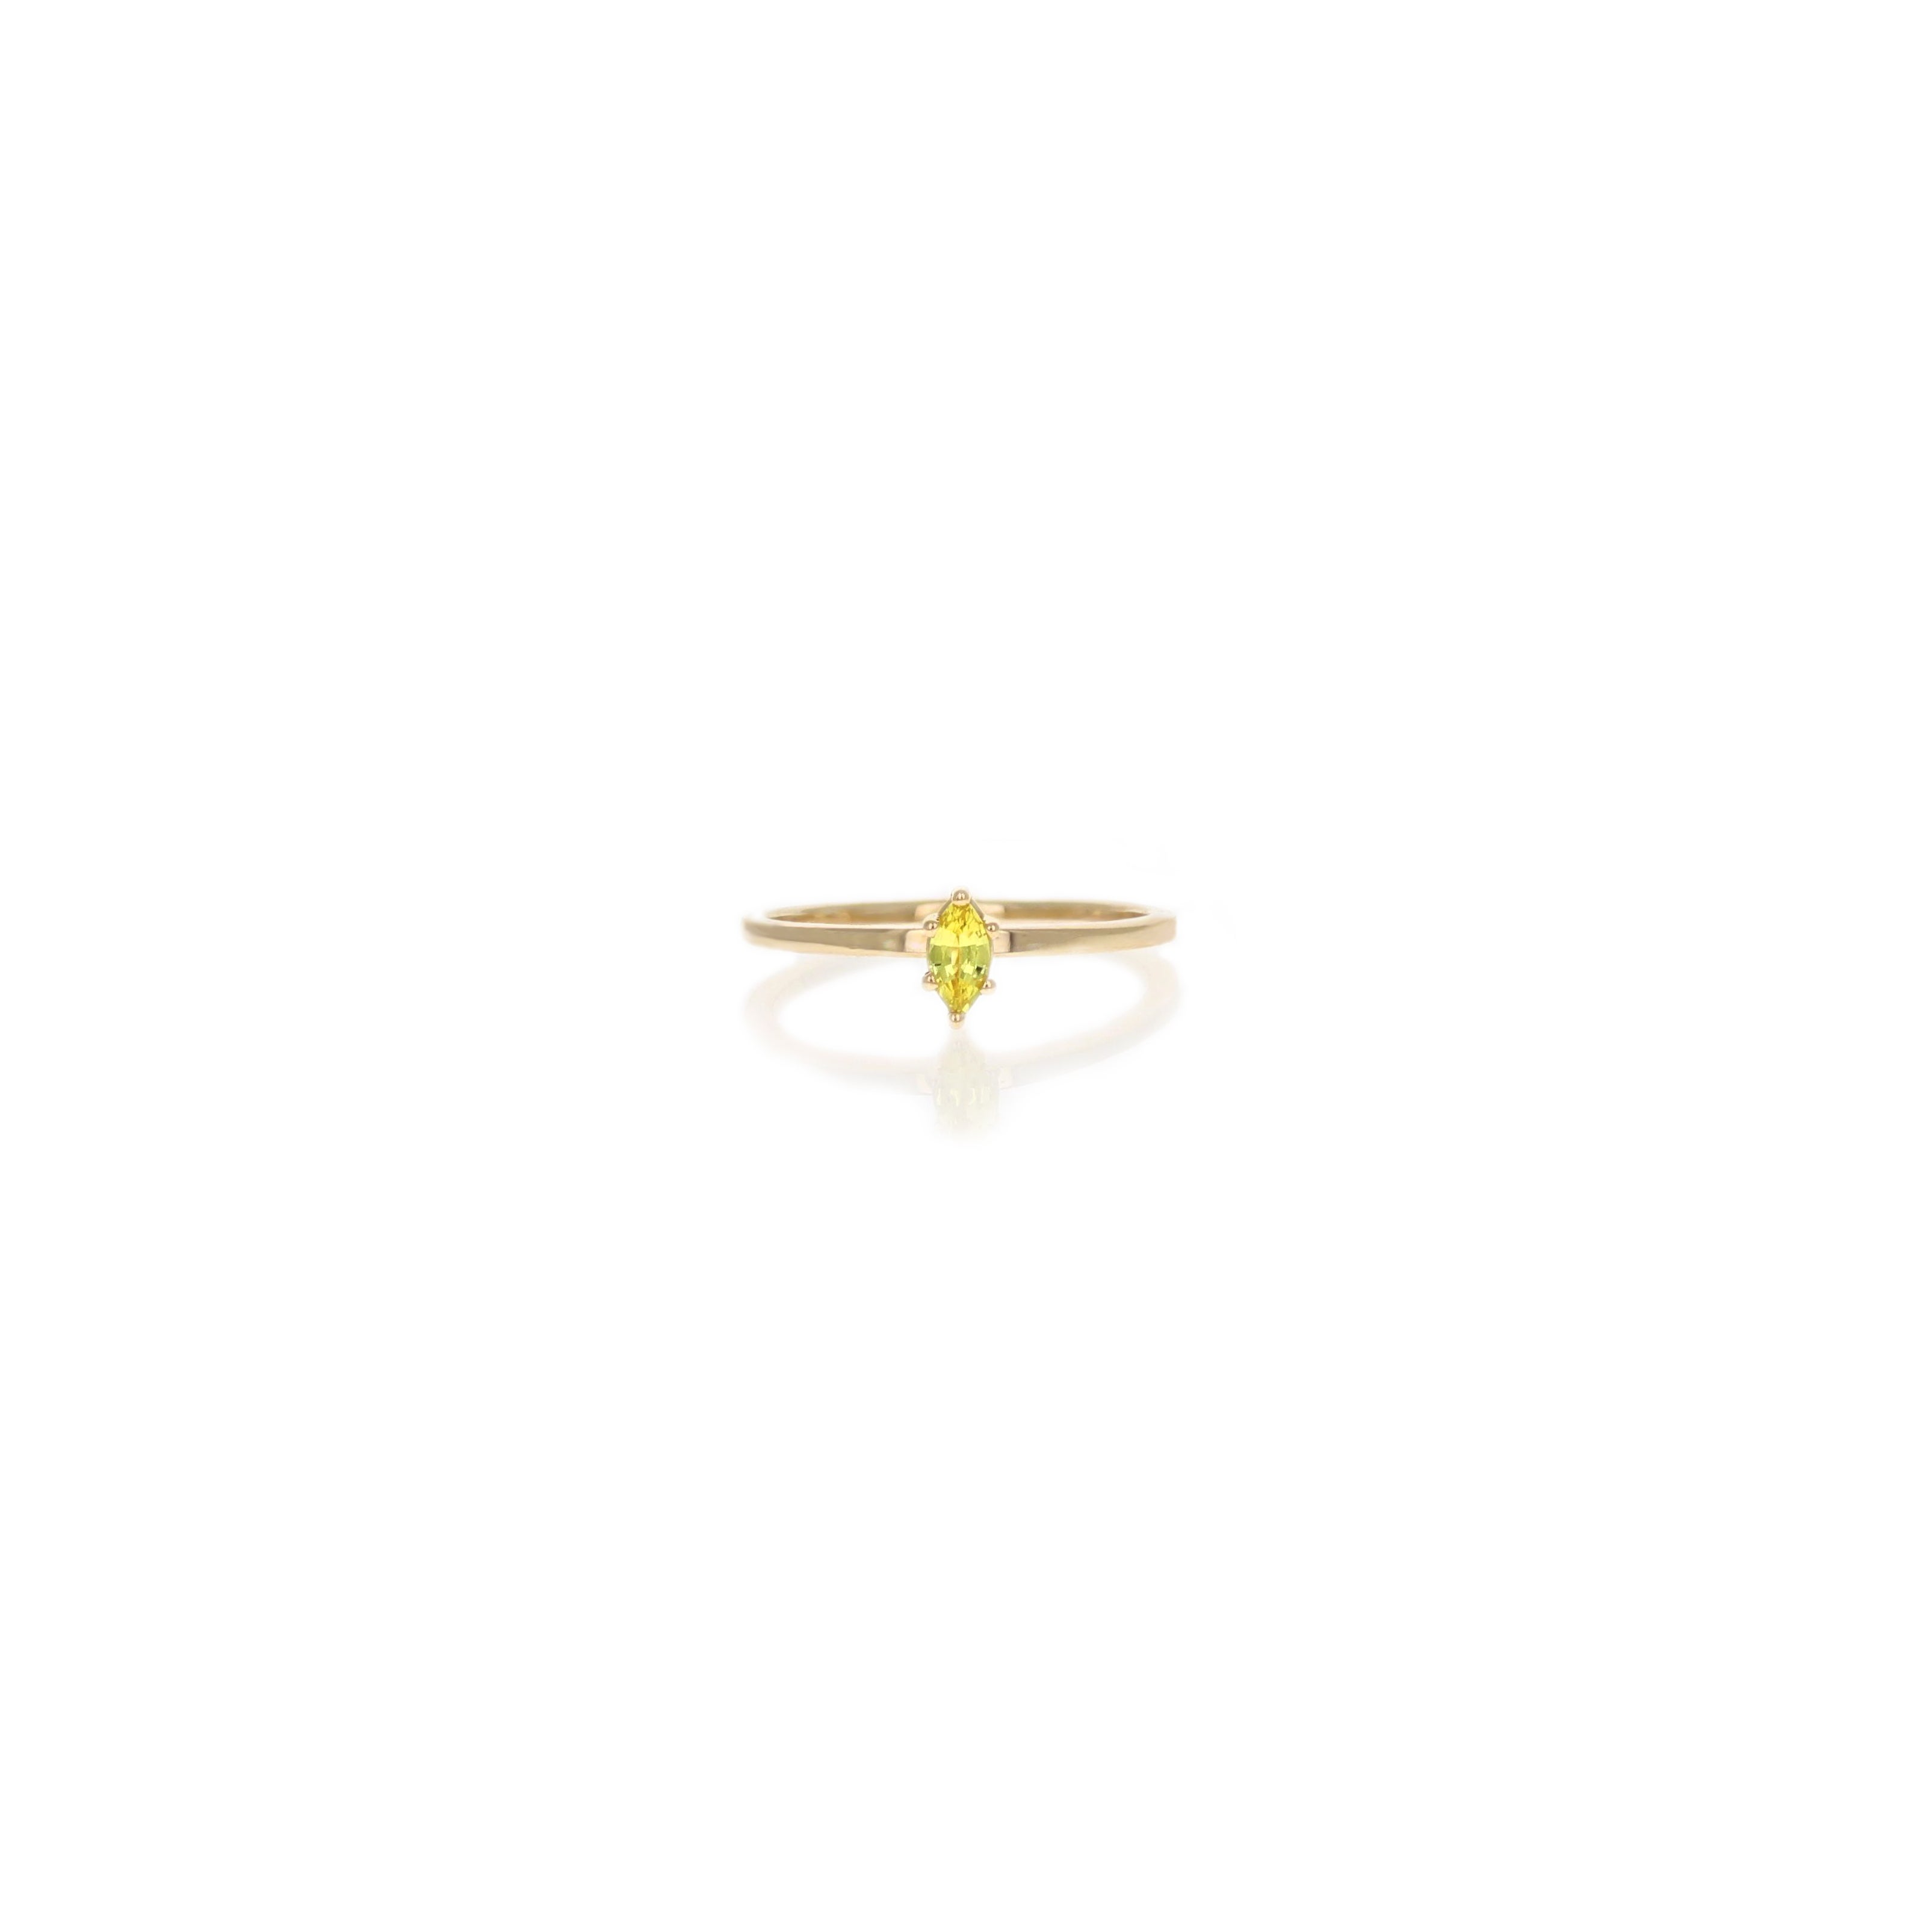 ed938ed5ddc97 Penelope Ring 14 Karat Yellow Gold with Yellow Marquise Sapphire